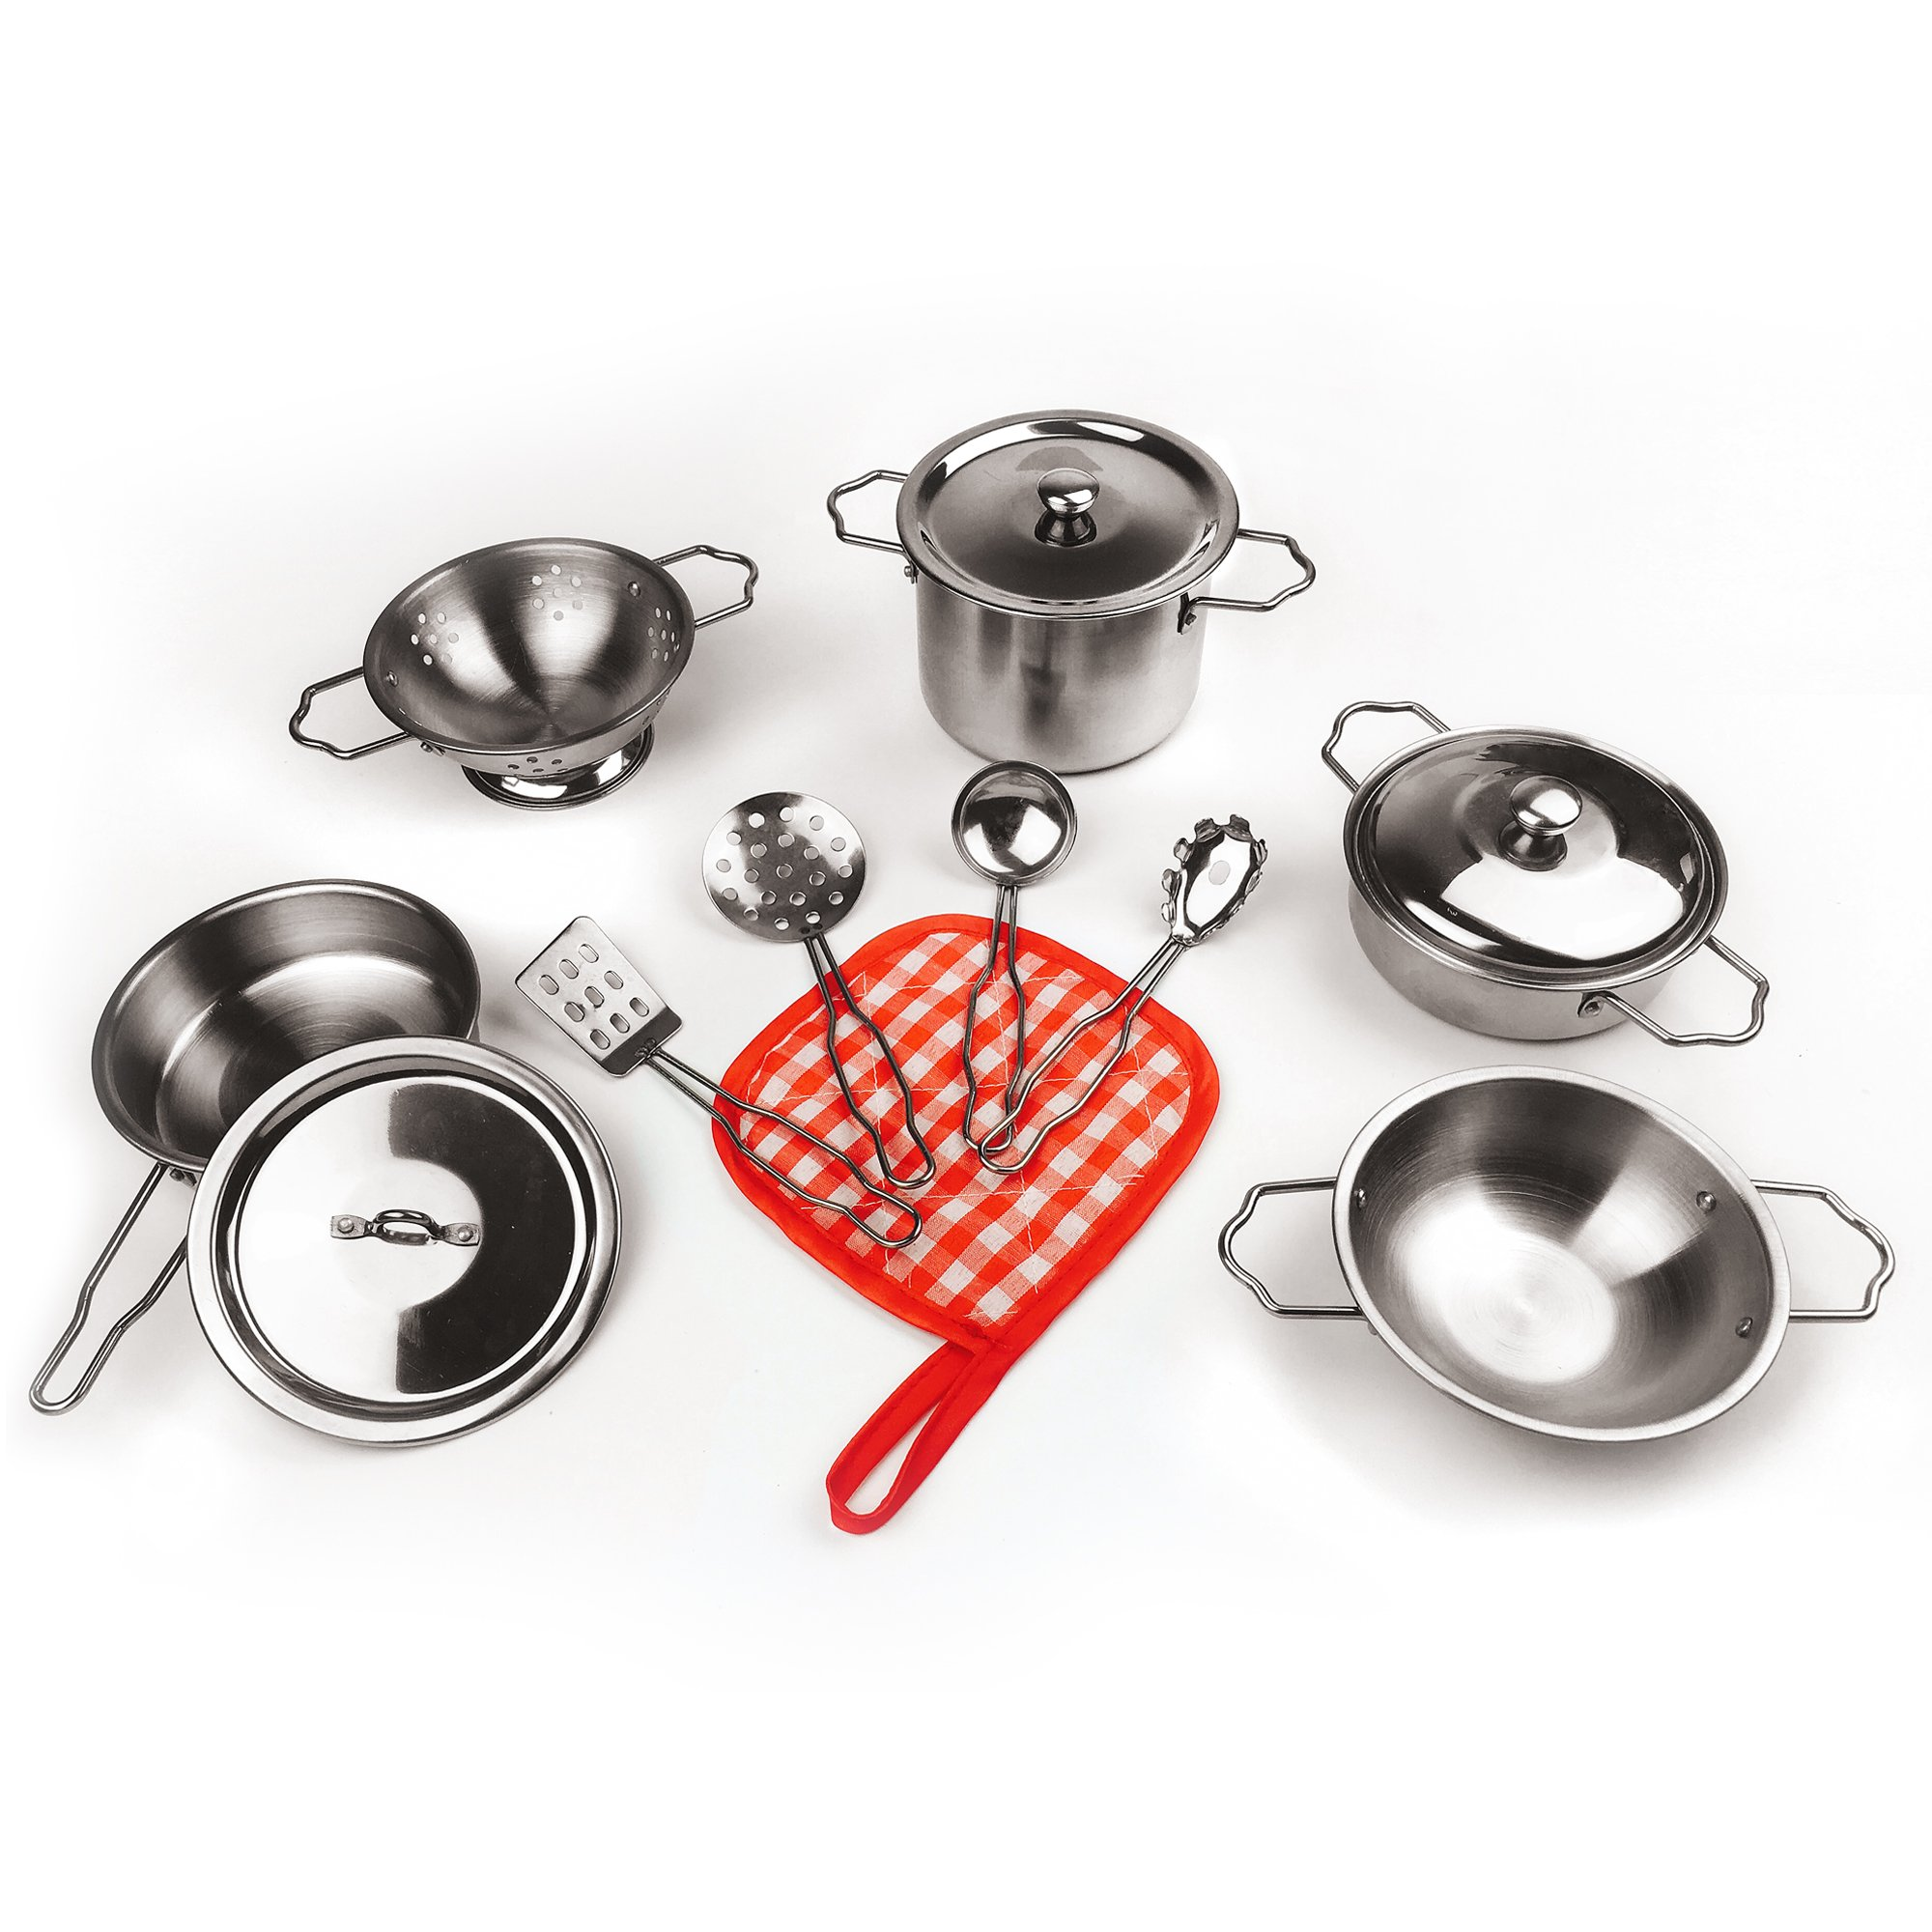 kids pots and pans set toy play pretend cookware playset age 2 3 4 5 6 13 pieces 712383532633 ebay. Black Bedroom Furniture Sets. Home Design Ideas